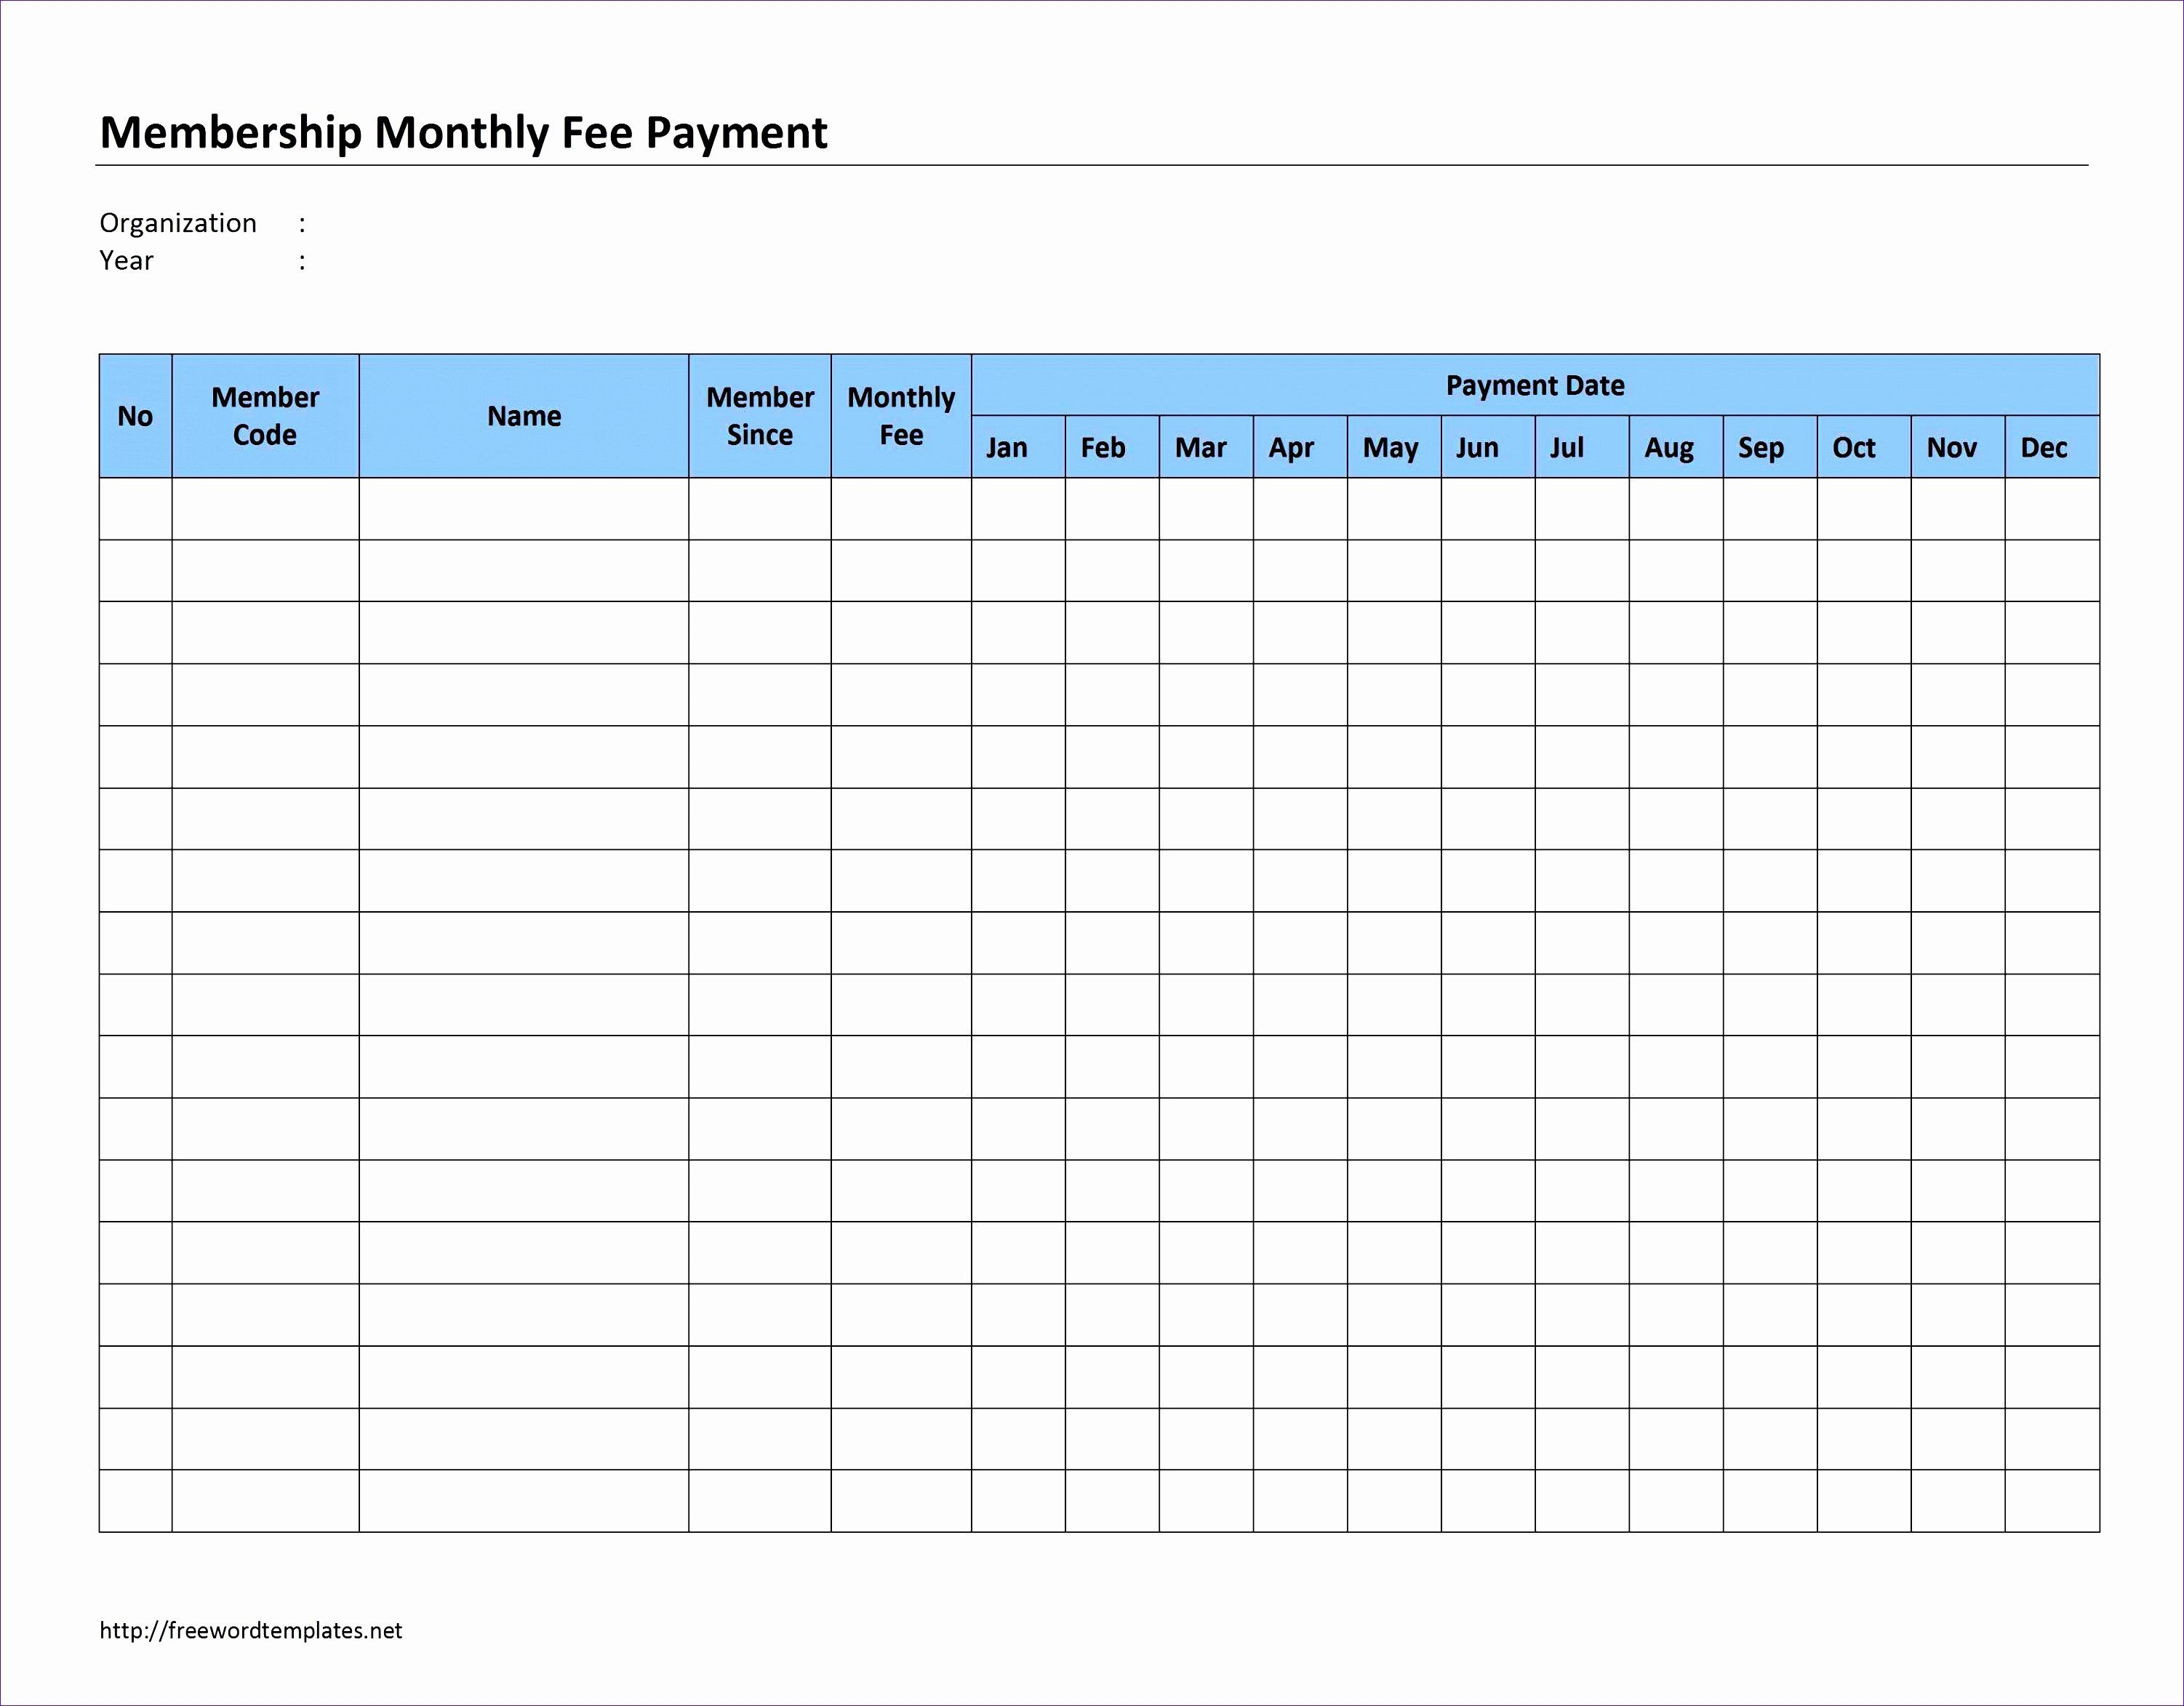 Monthly Payment Schedule Template Elegant Free Weekly Schedule Templates For Excel Smartshee In 2020 Schedule Template Certificate Templates Business Proposal Template